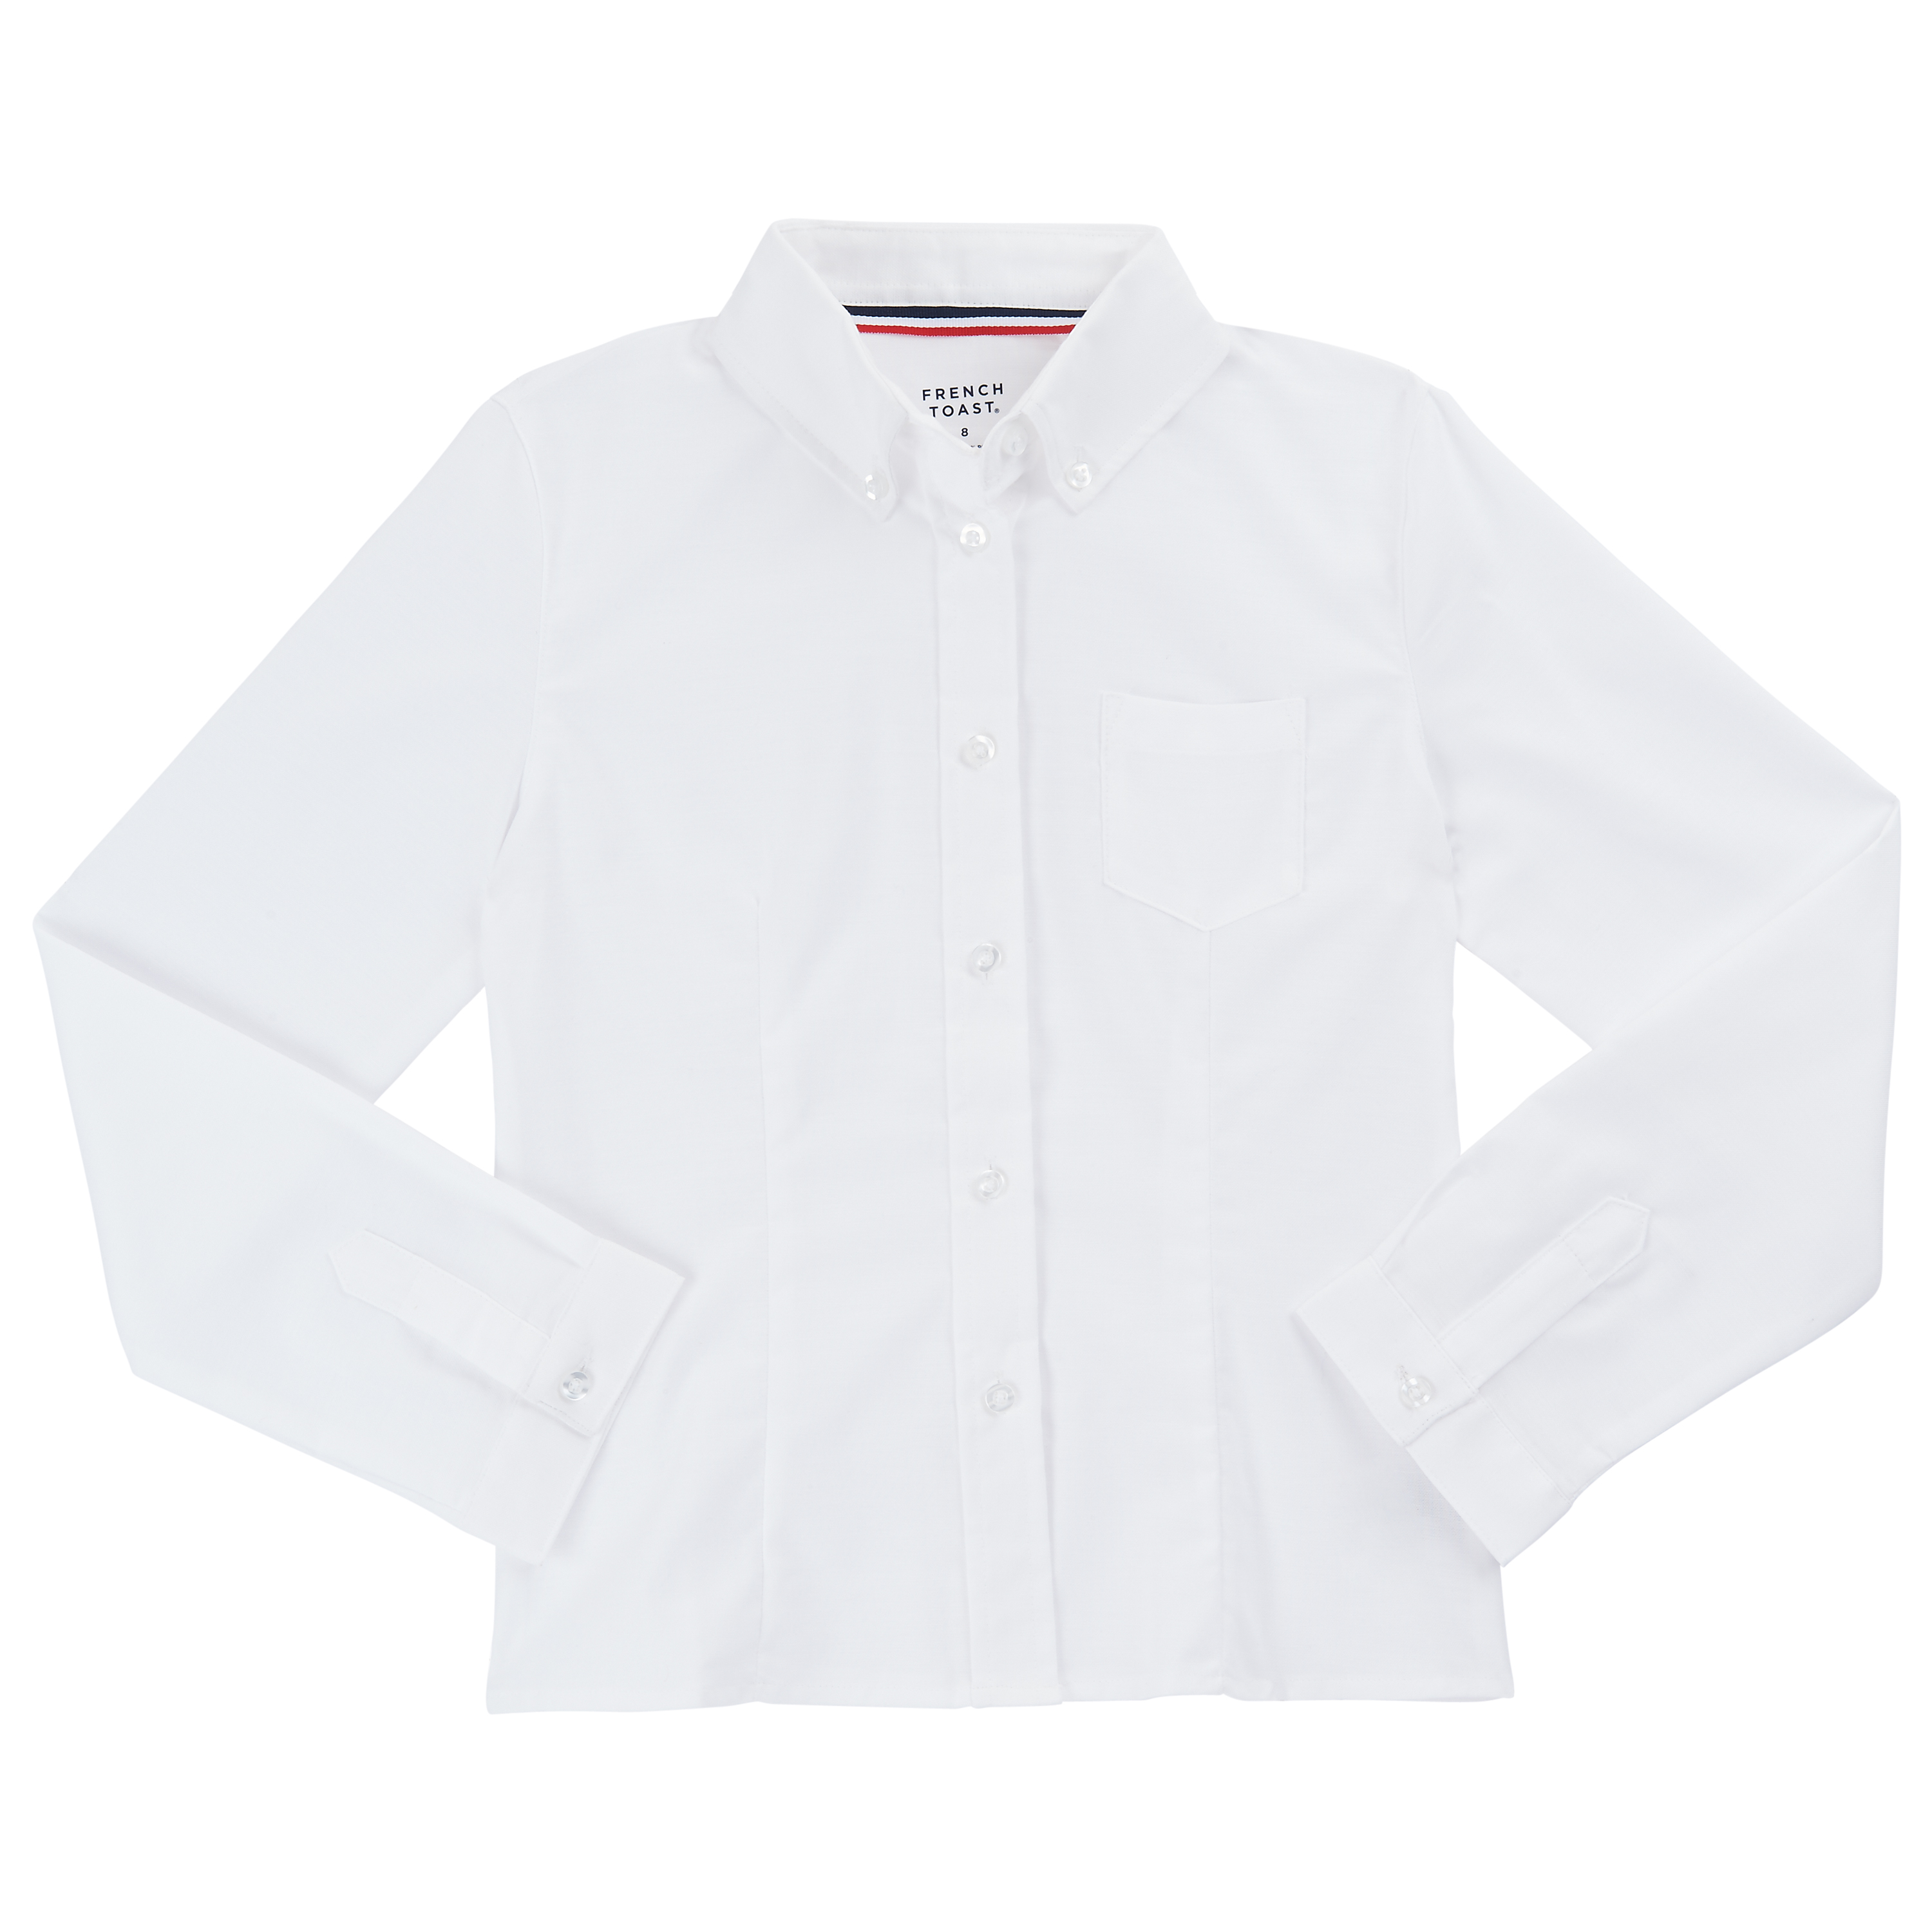 White Oxford- Long Sleeve Shirt (Adult Sizes S-4XL)-French Toast